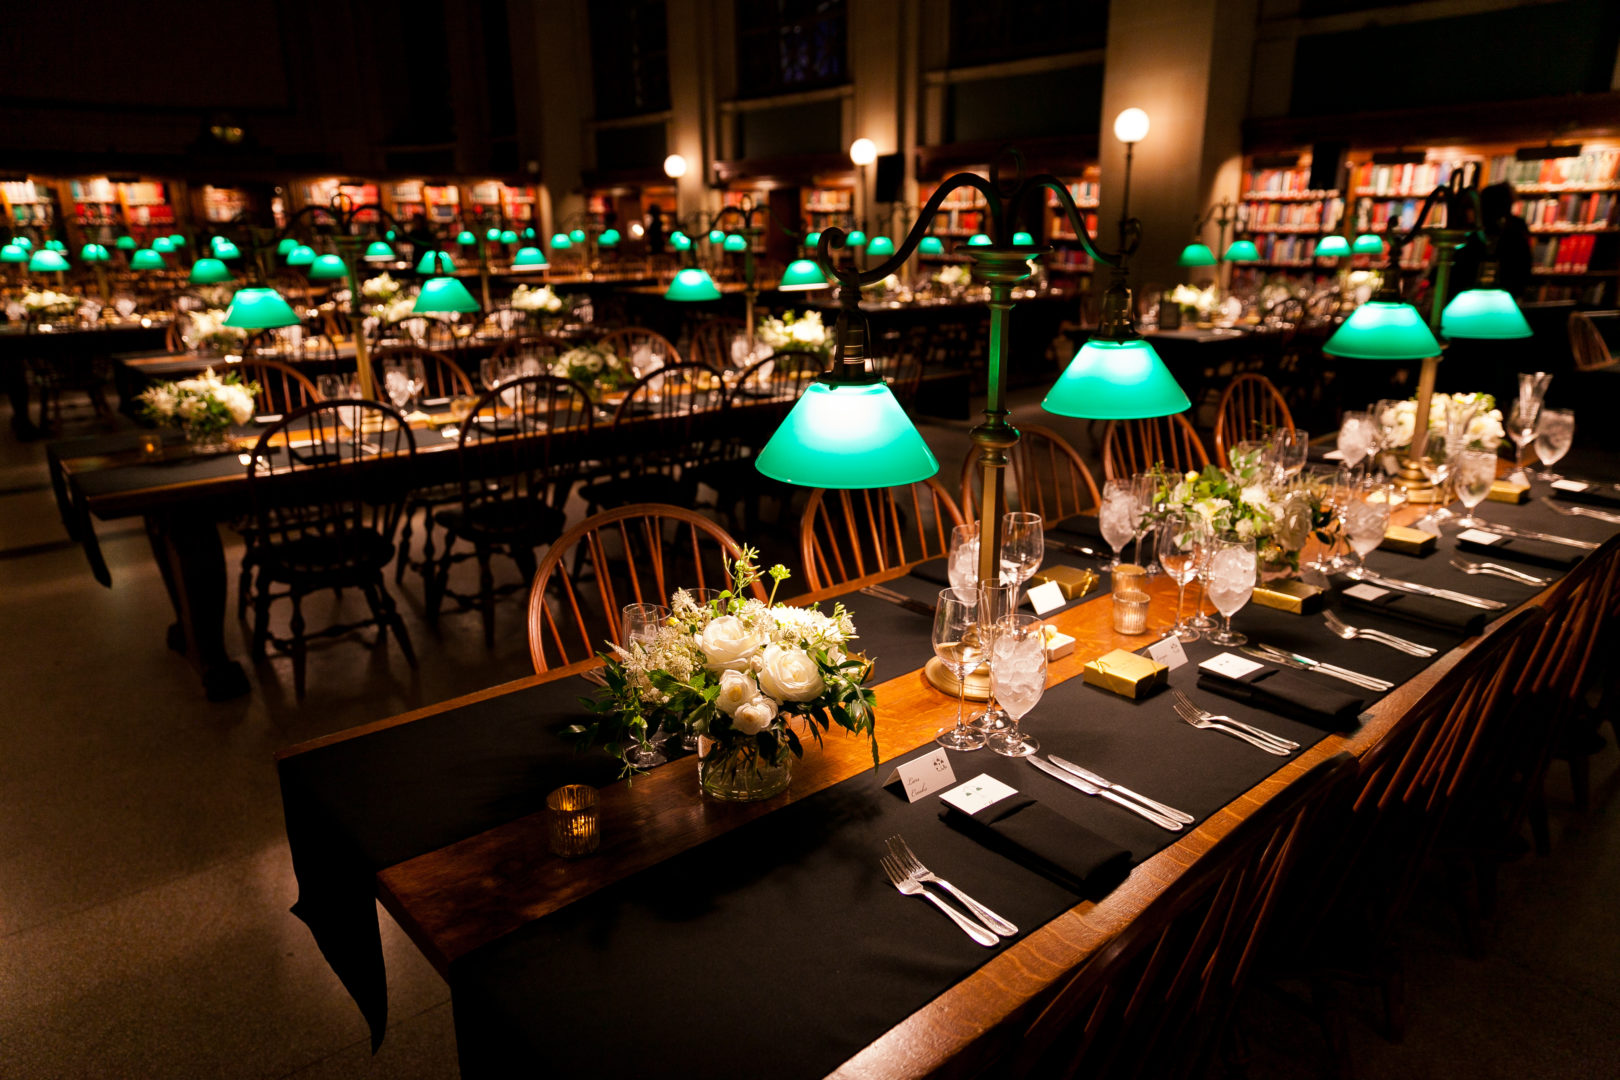 Boston Public Library Wedding.The Boston Public Library Event Lighting